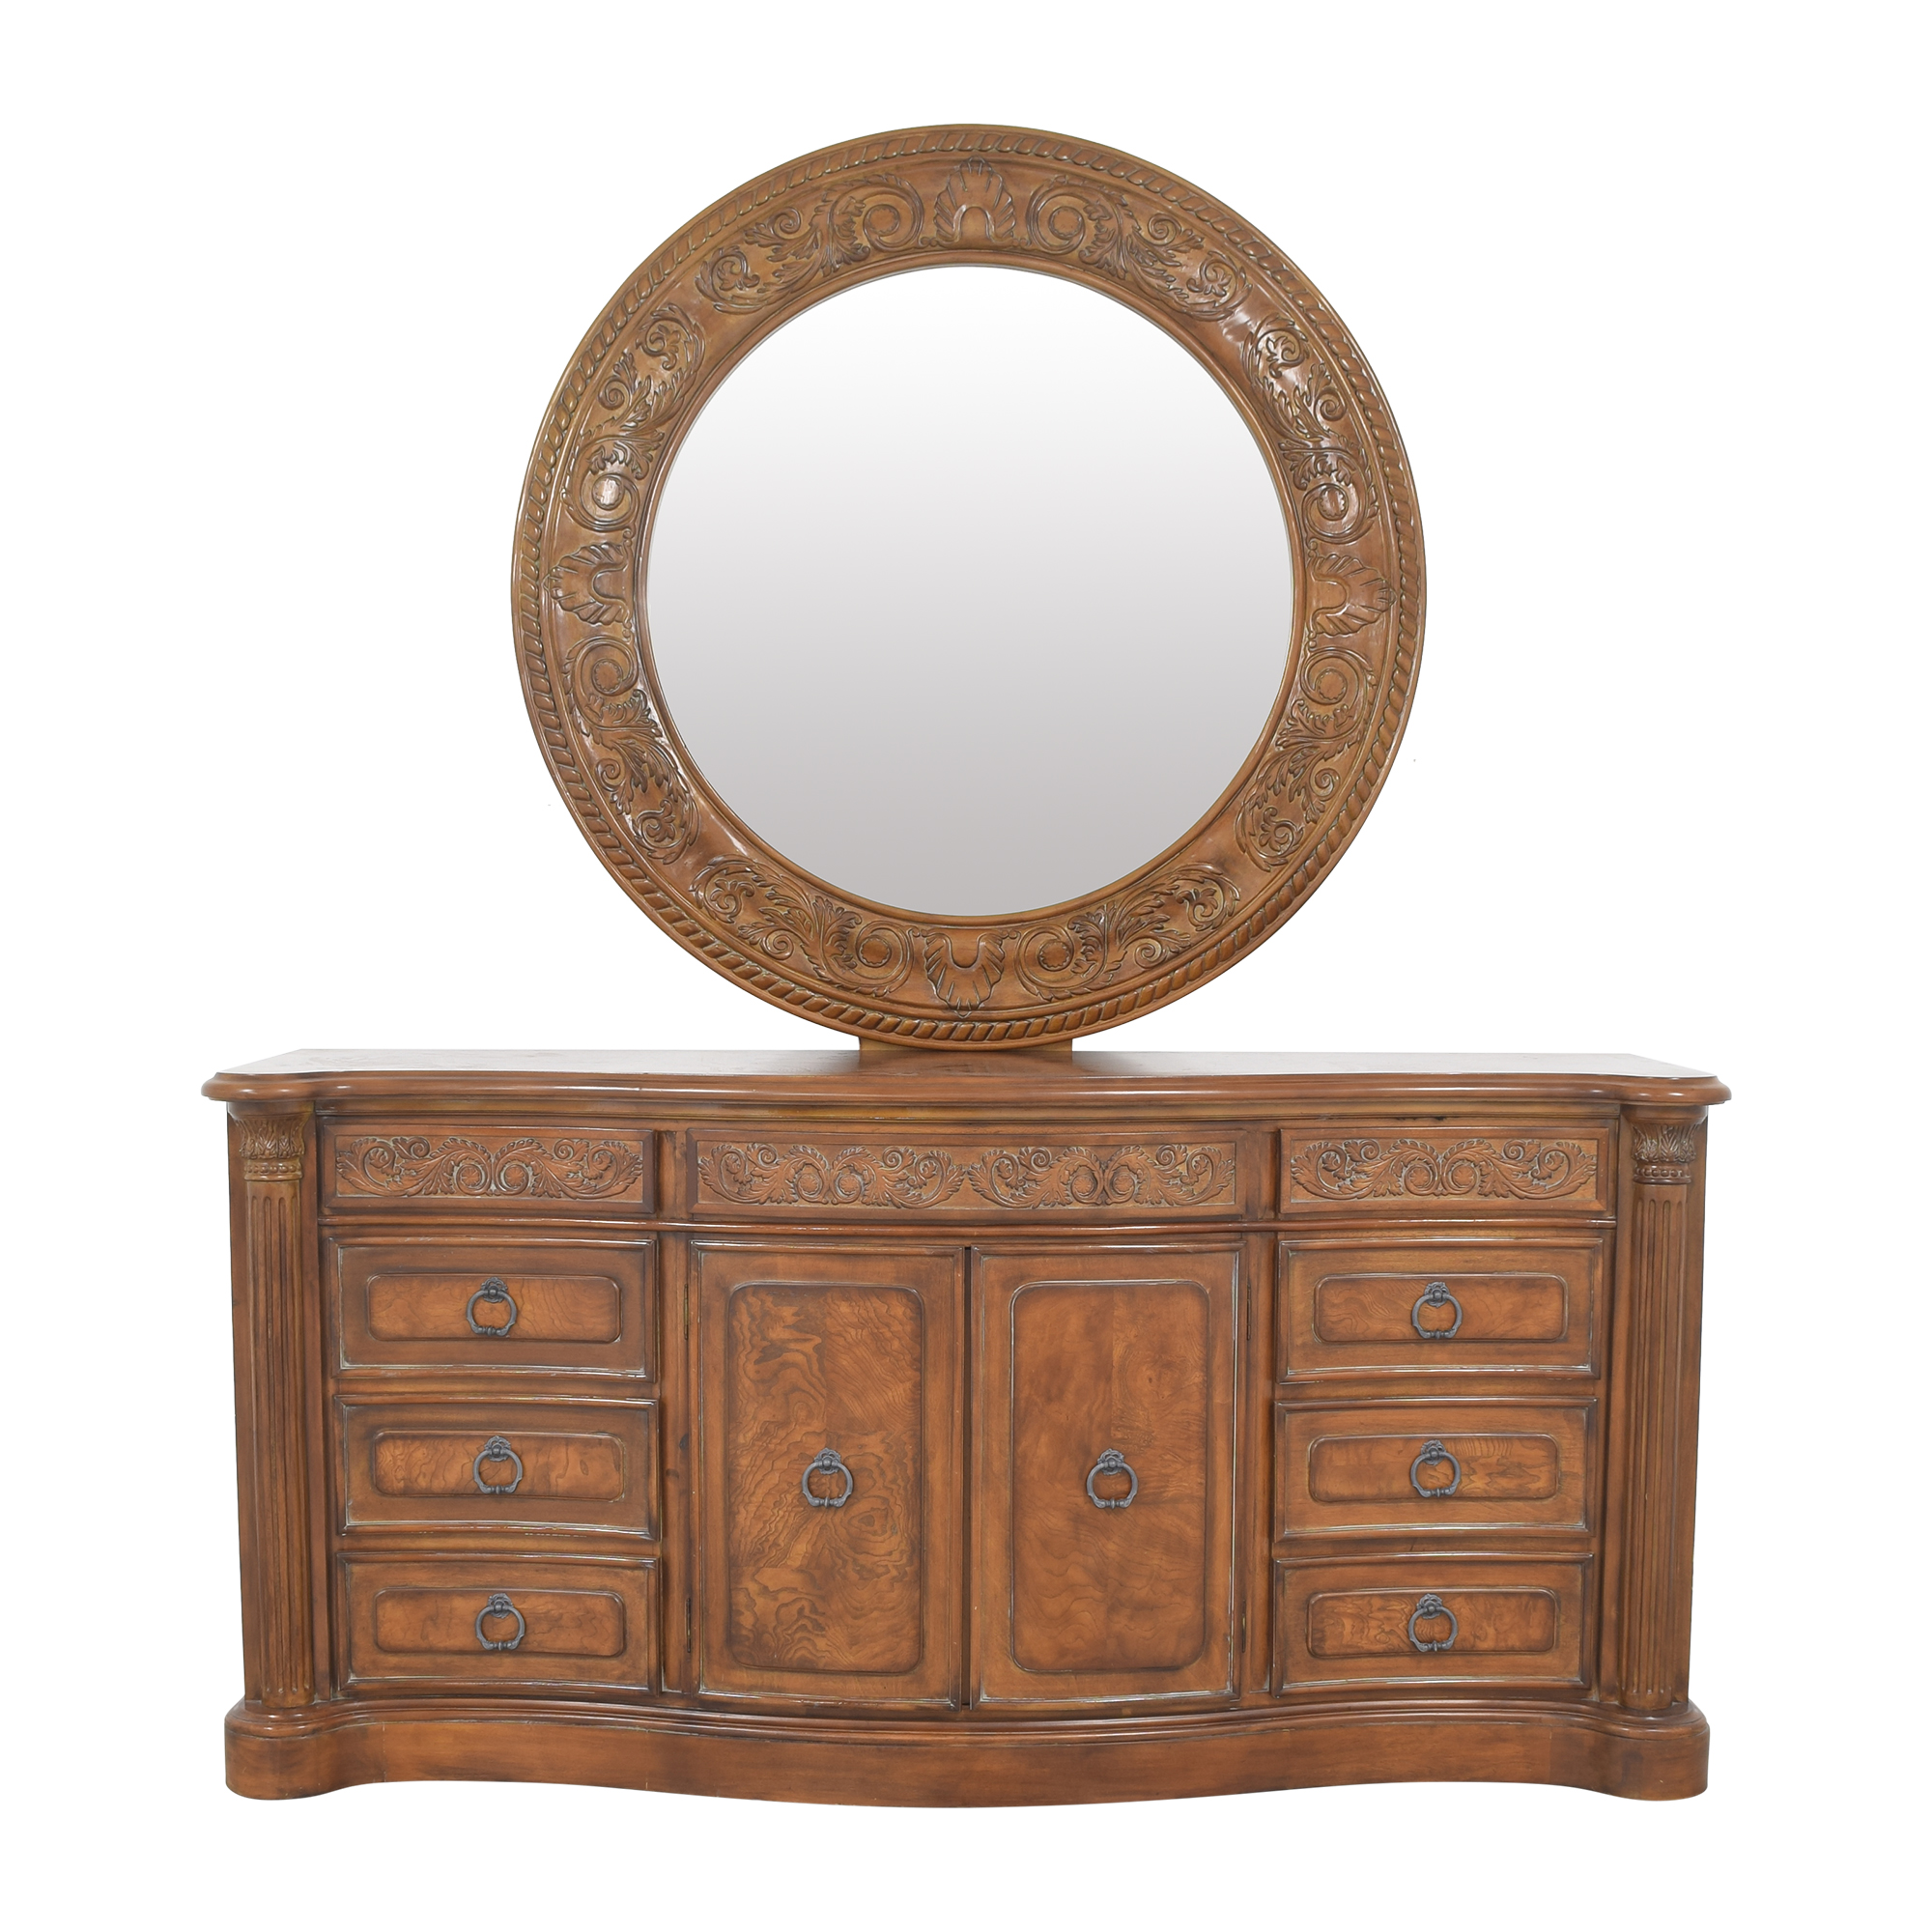 buy Collezione Europa Dresser with Oval Mirror Collezione Europa Dressers